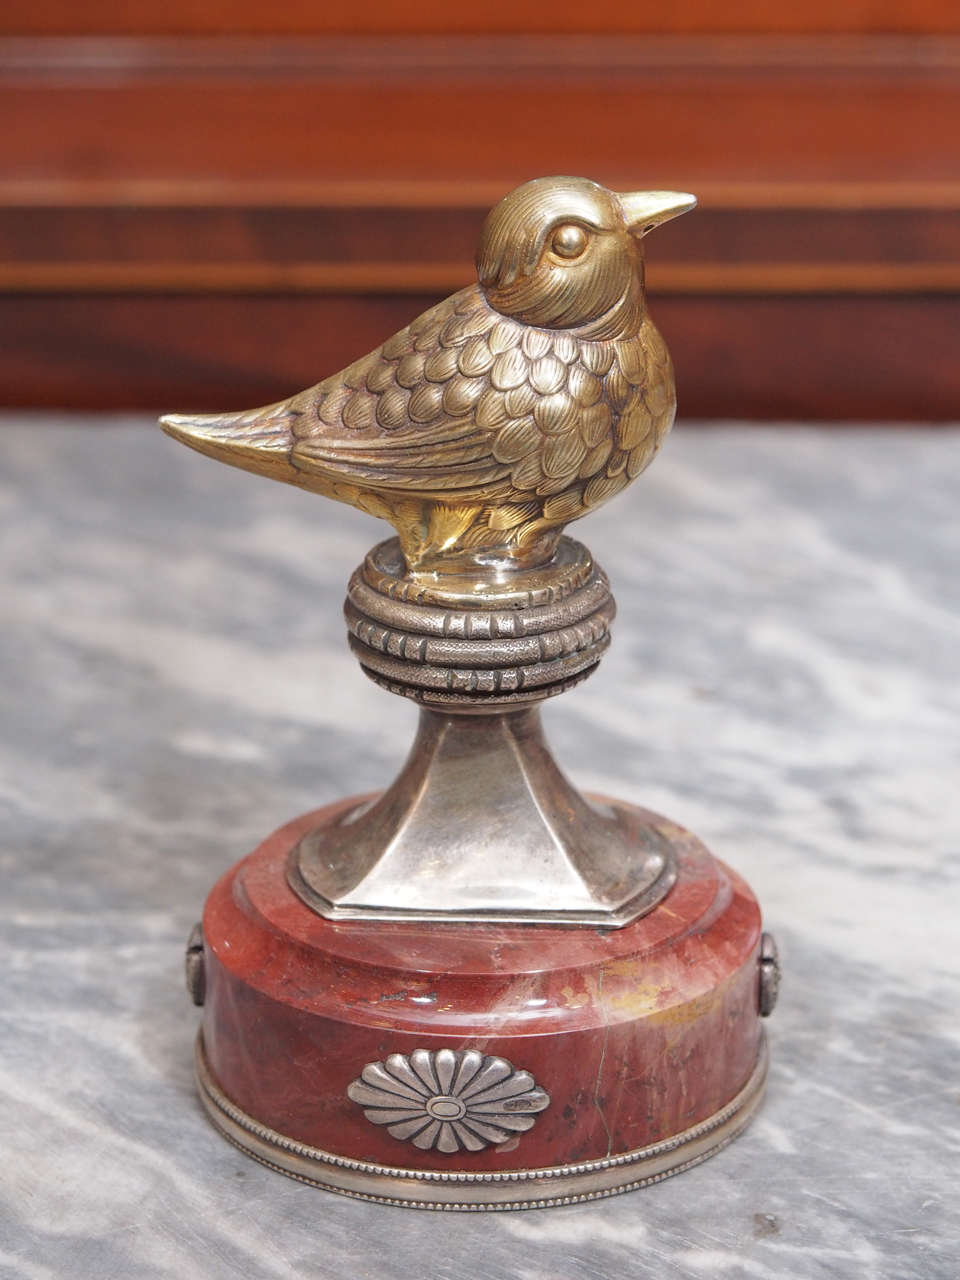 Russian silver and marble figural paper weight in form of a bird with lavender marble base. Holds 84 silver purity mark with Julius Rappoport work master mark.